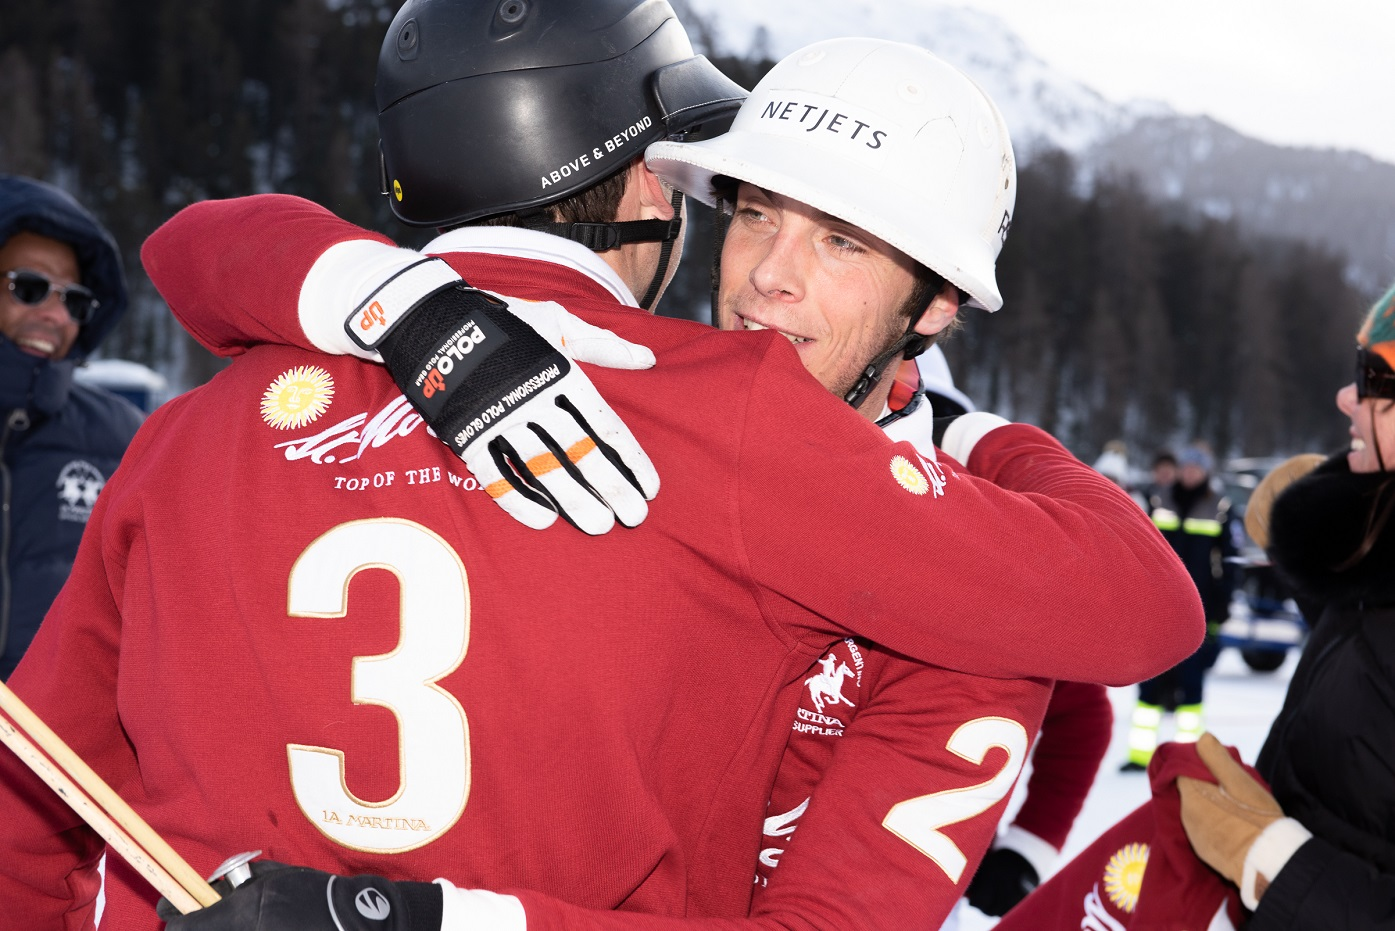 The Finals Of The 36th Snow Polo World Cup St. Moritz